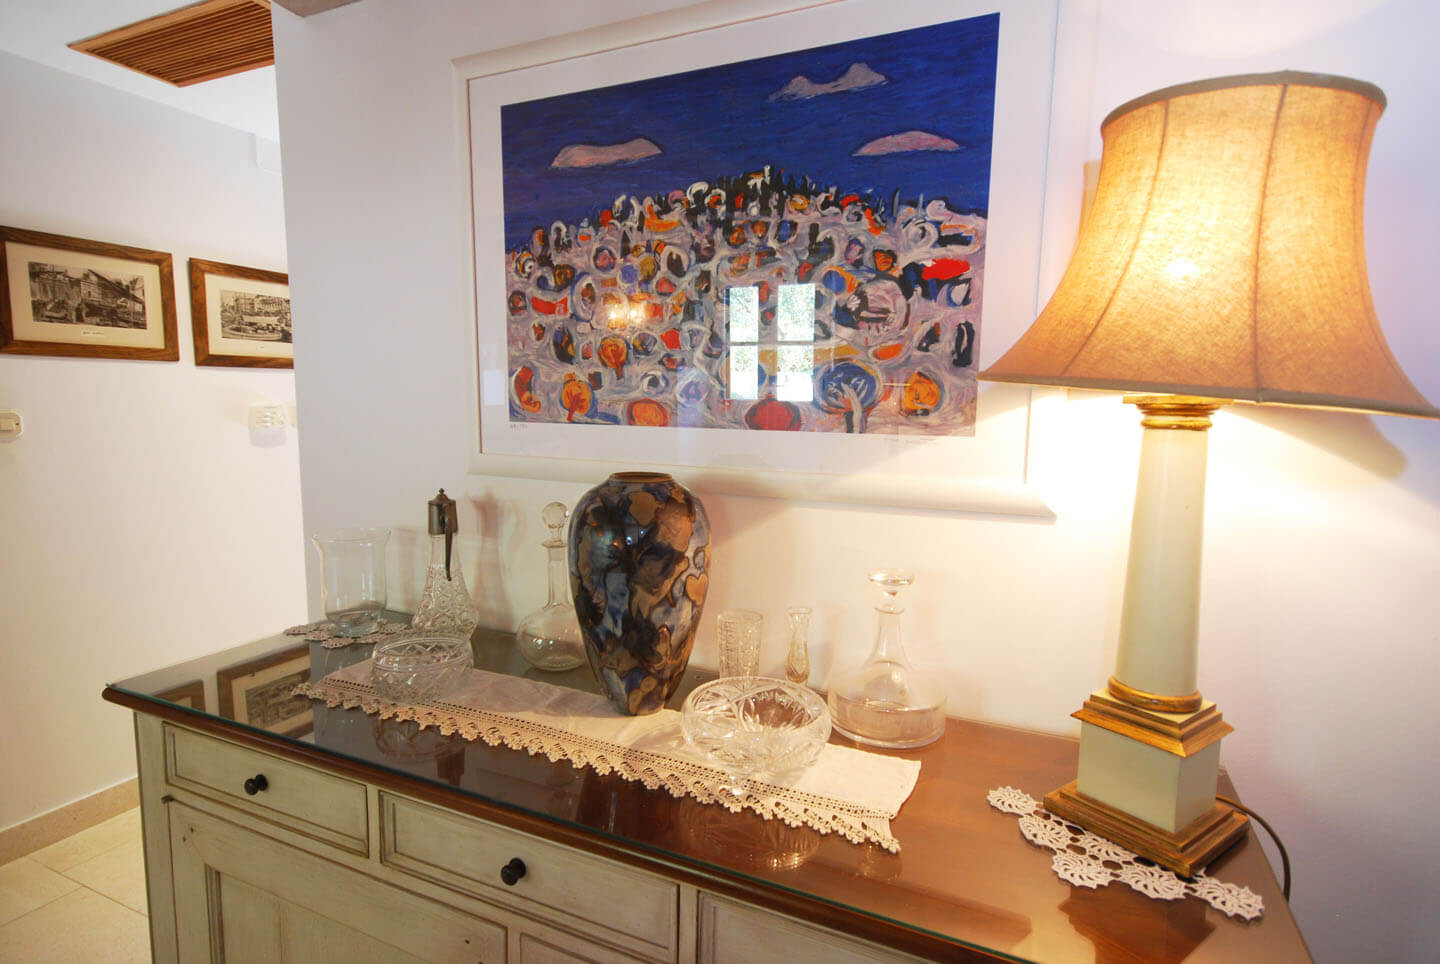 Sideboard in the living room